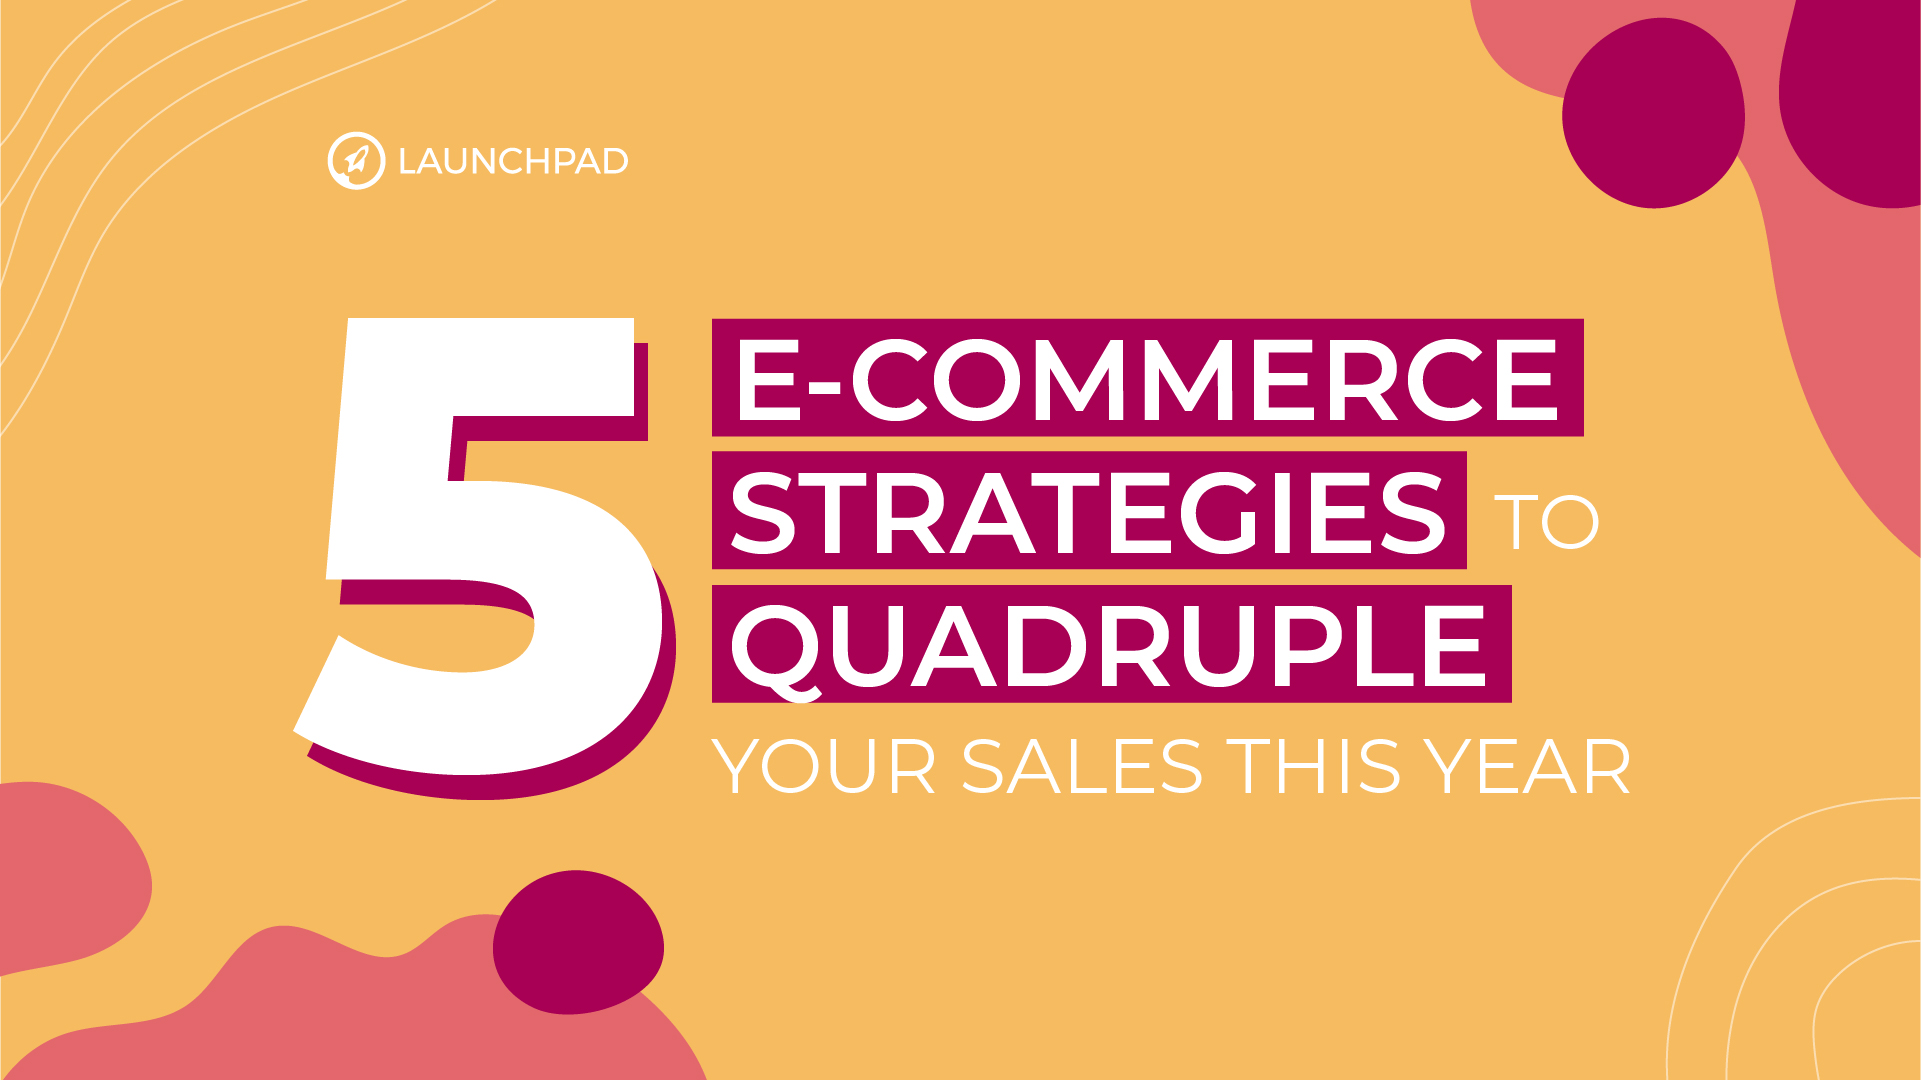 5 E-Commerce Strategies to Quadruple Your Sales This Year